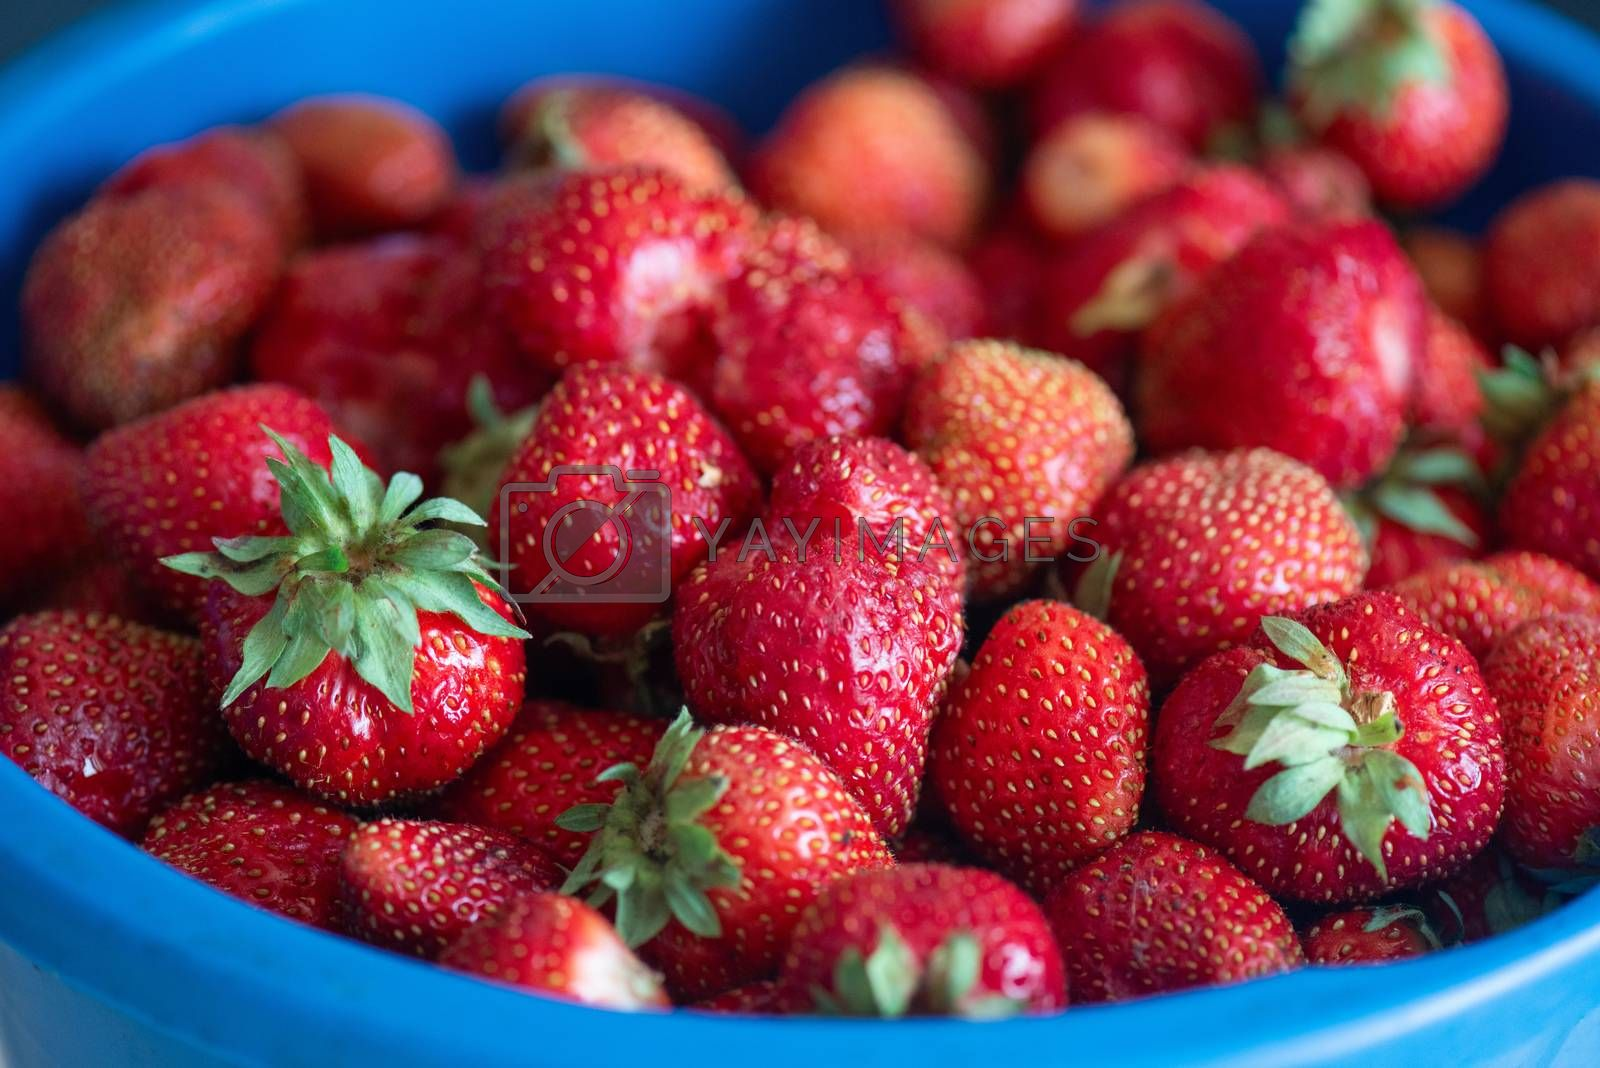 A bucket of ripe delicious strawberries